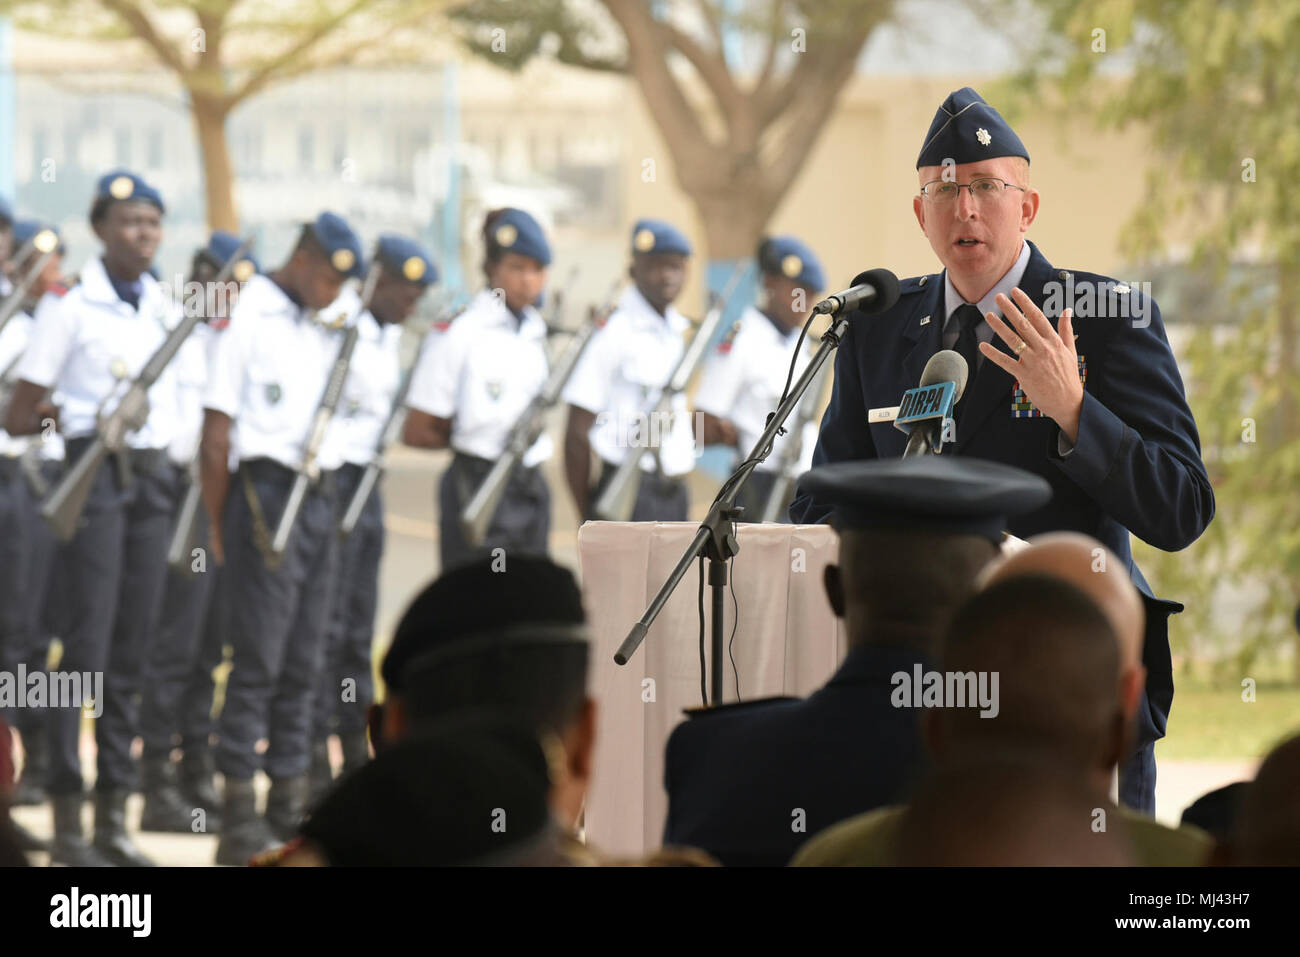 U.S. Air Force Lt. Col. Andrew Allen, chief of global health engagements branch, U.S. Air Forces in Europe and Air Forces Africa, speaks during the closing ceremony of African Partnership Flight Senegal at Captain Andalla Cissé Air Base, Senegal, March 23, 2018. The purpose of APF Senegal is to conduct multilateral, military-to-military engagements and security assistance with African air forces. (U.S. Air Force Image collection celebrating the bravery dedication commitment and sacrifice of U.S. Armed Forces and civilian personnel. - Stock Image